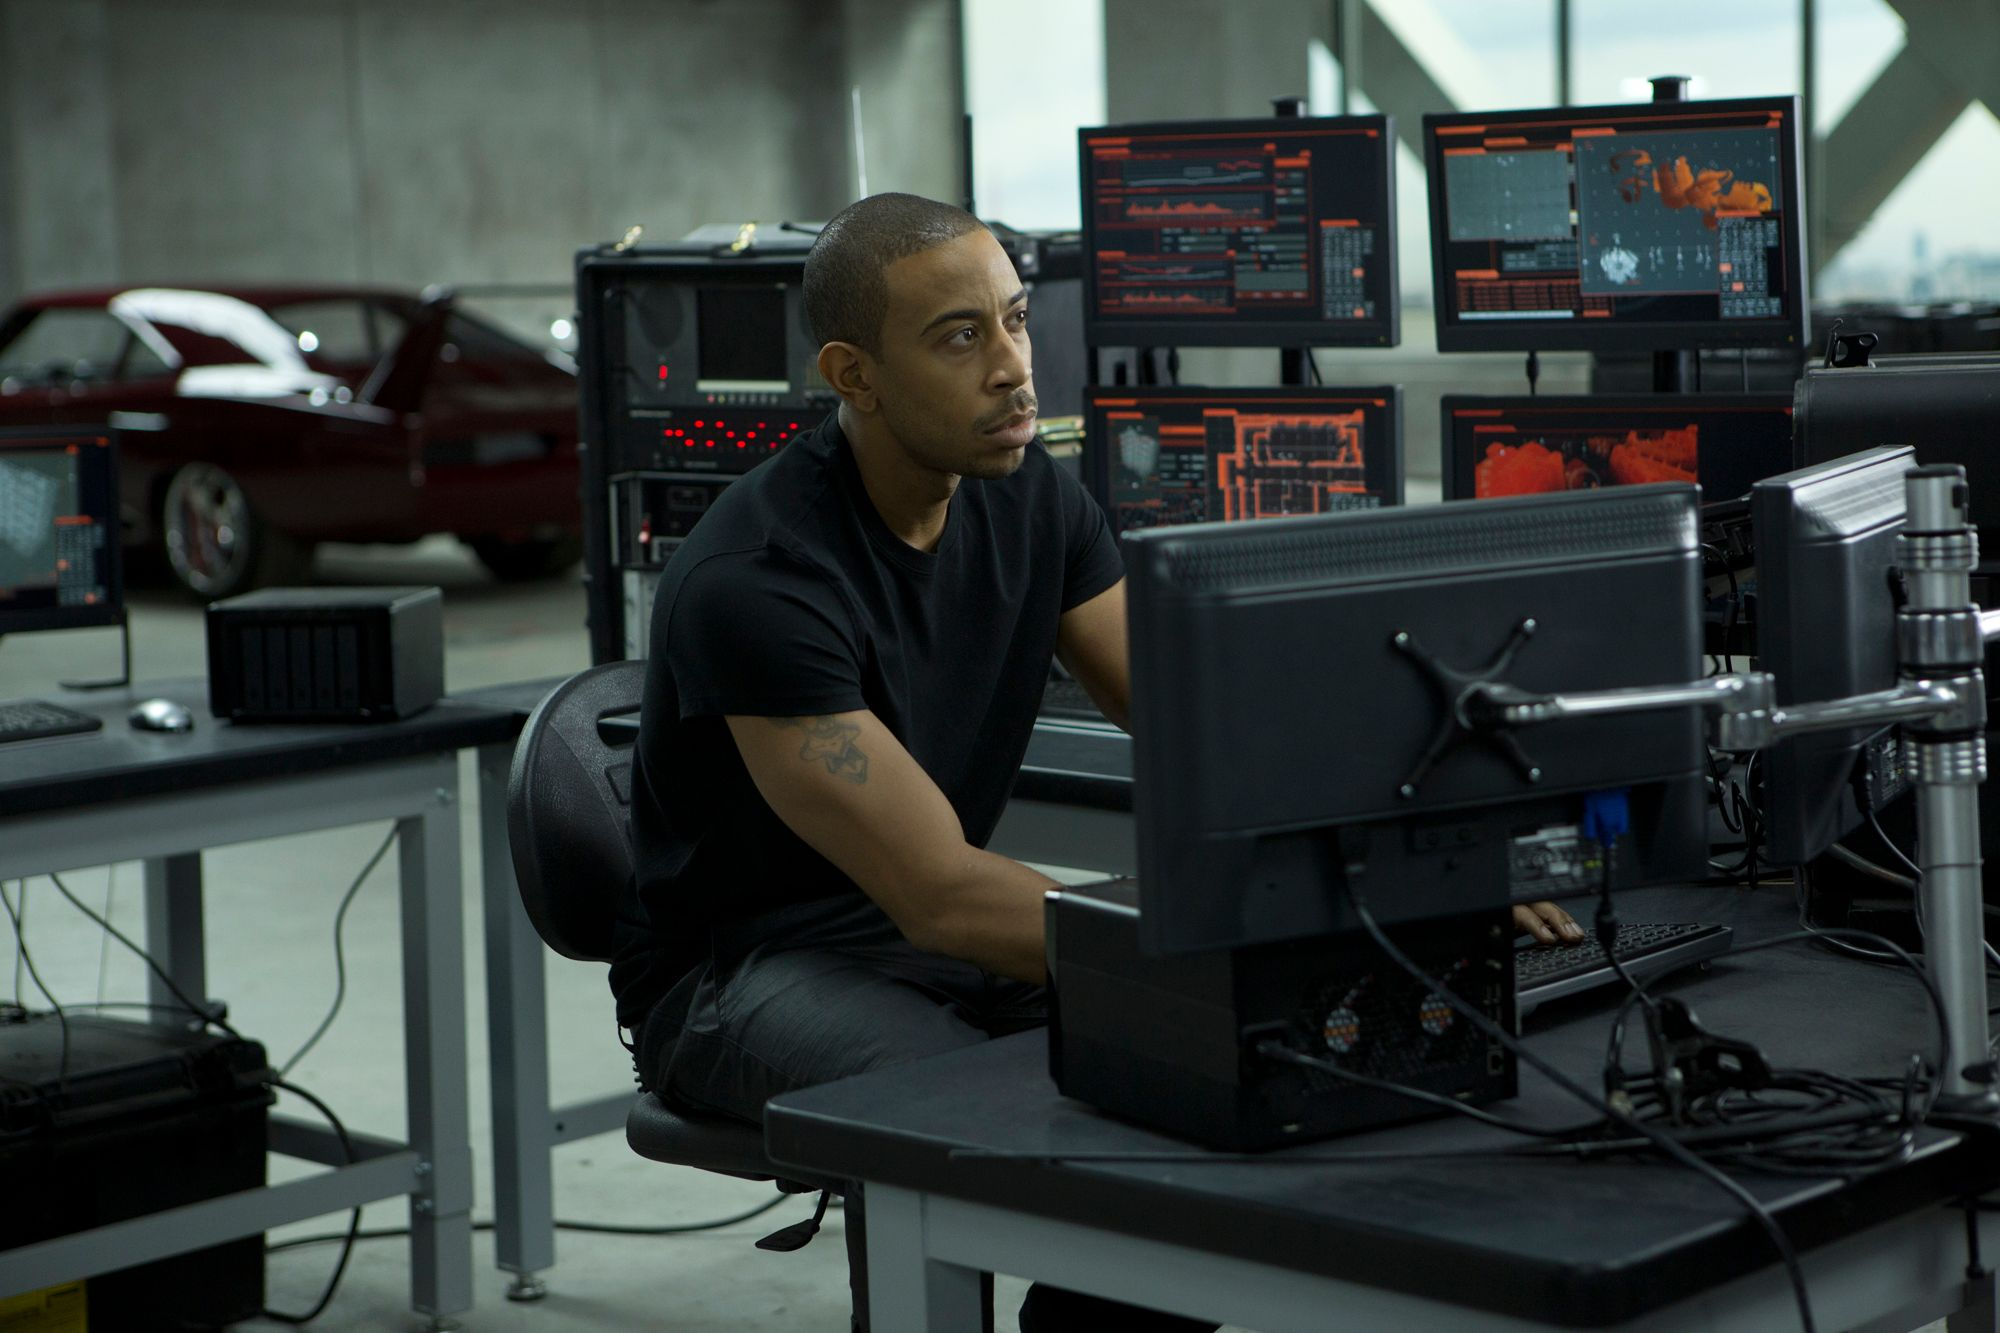 FAST & FURIOUS 6 Images. FAST & FURIOUS 6 Stars Vin Diesel ...